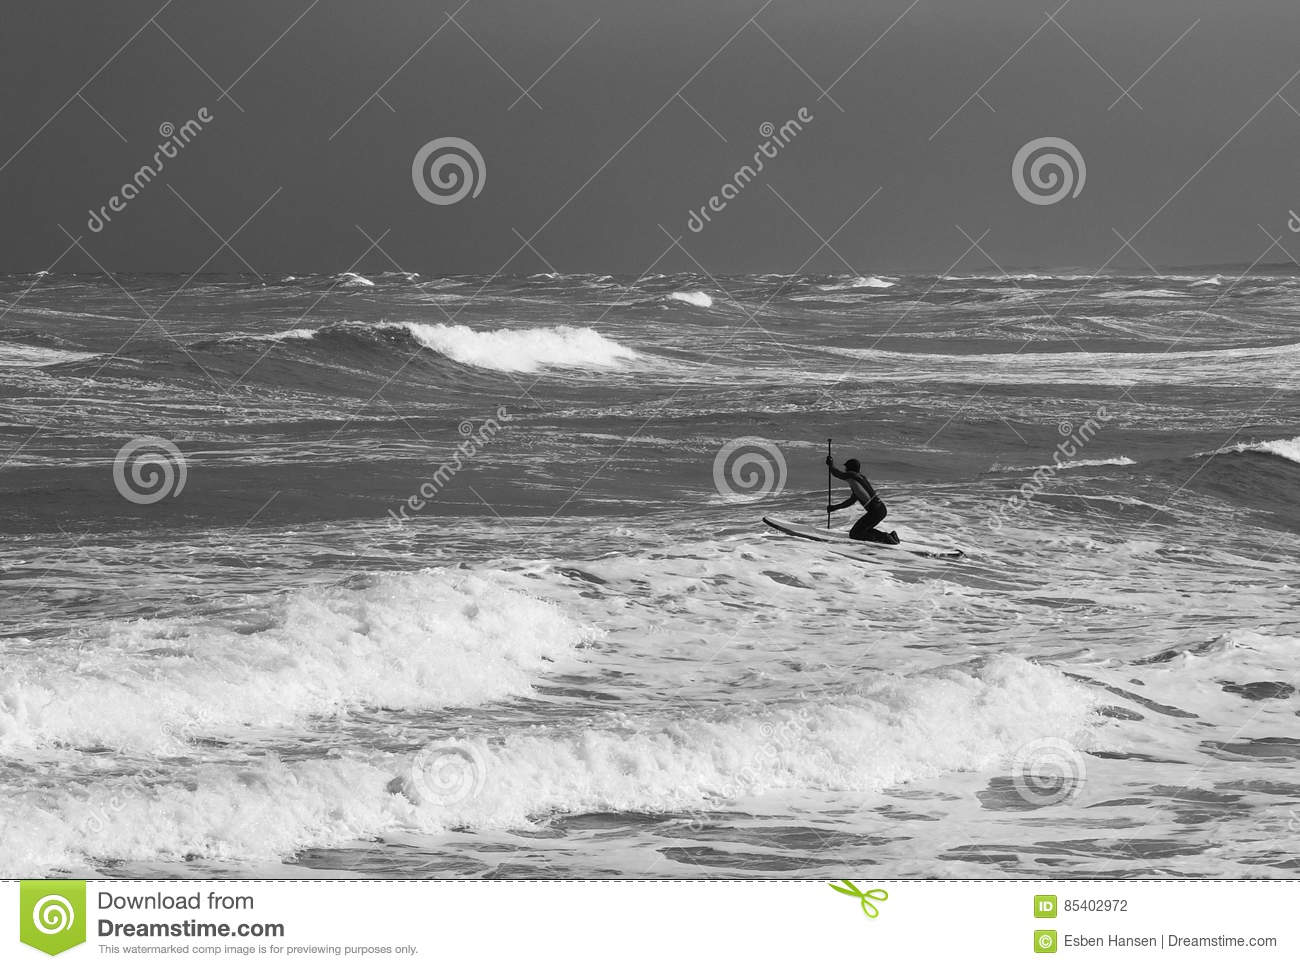 Surfer paddles out to the waves